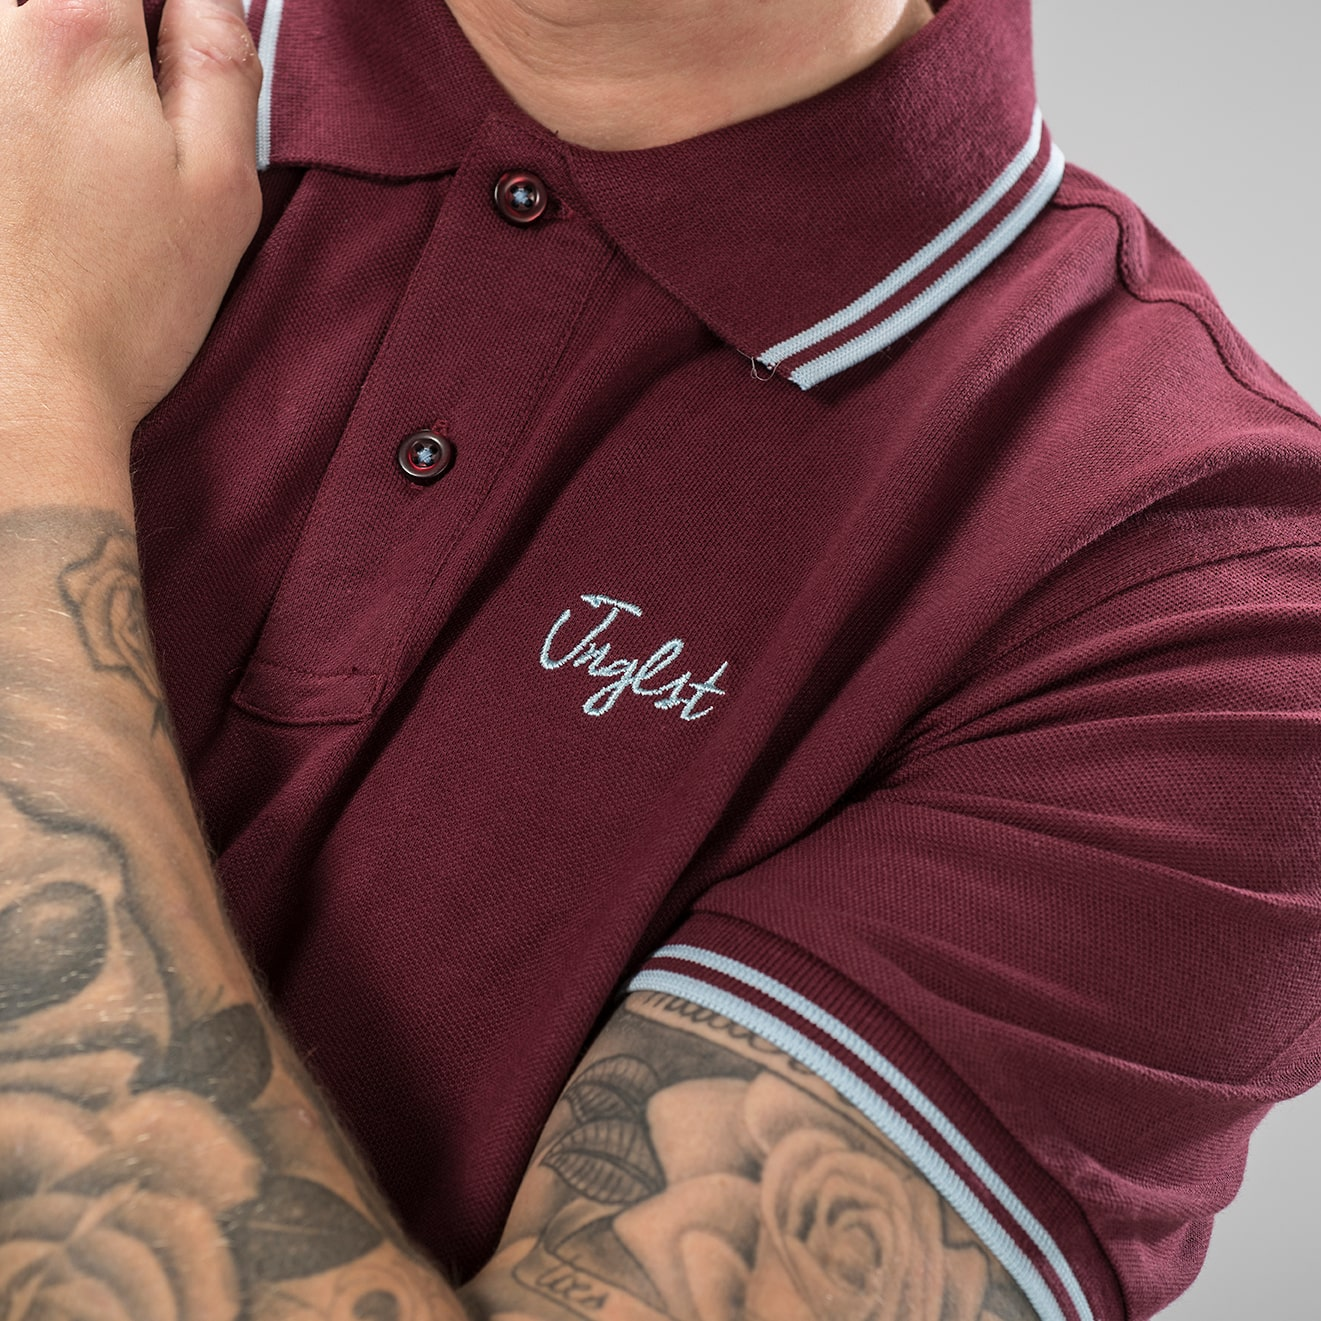 Burgundy Polo Shirt by Junglist Network